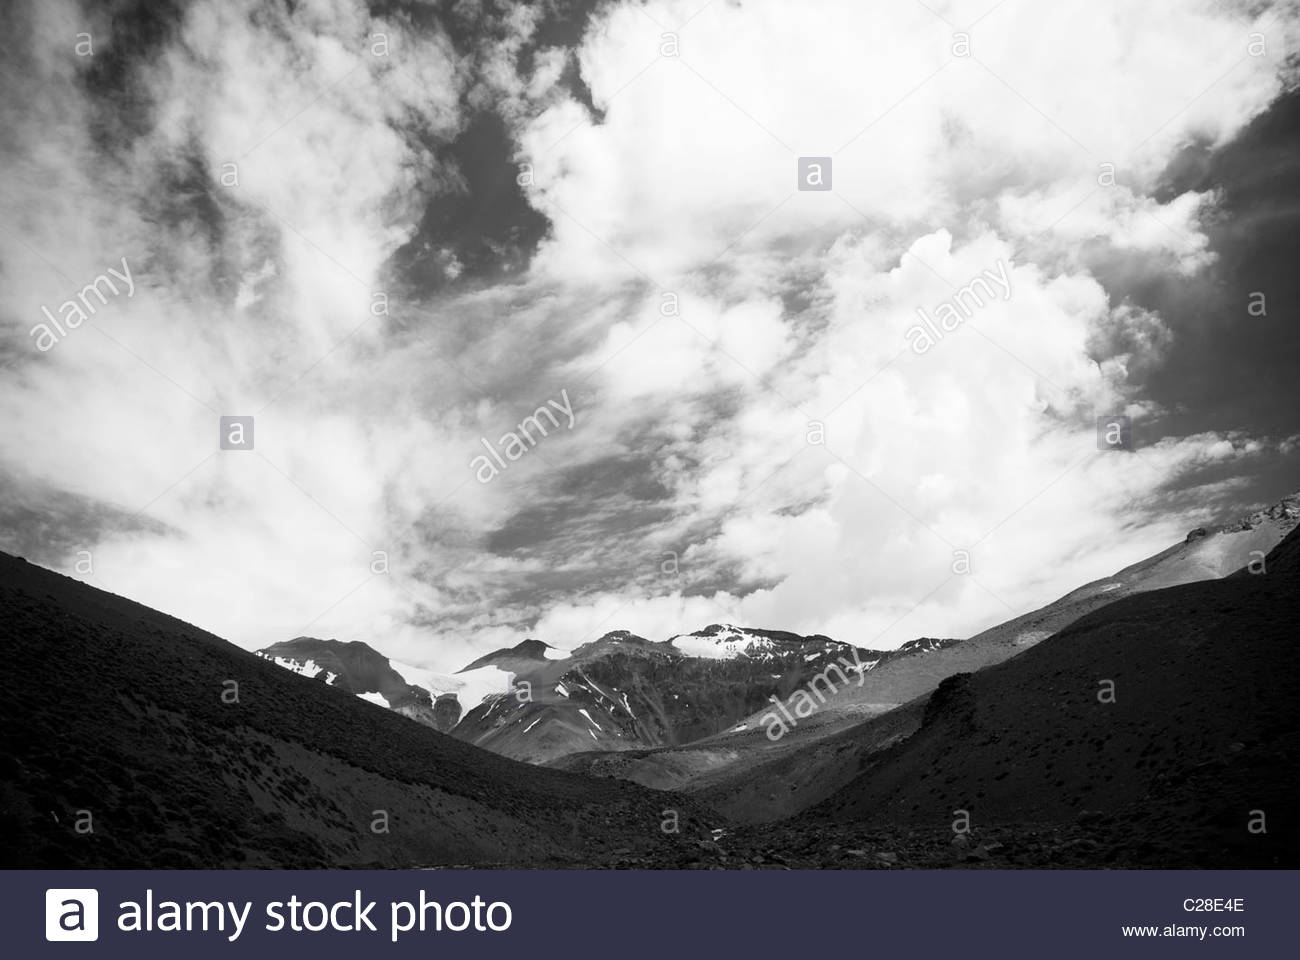 A black and white photograph of the Andes Mountains. - Stock Image